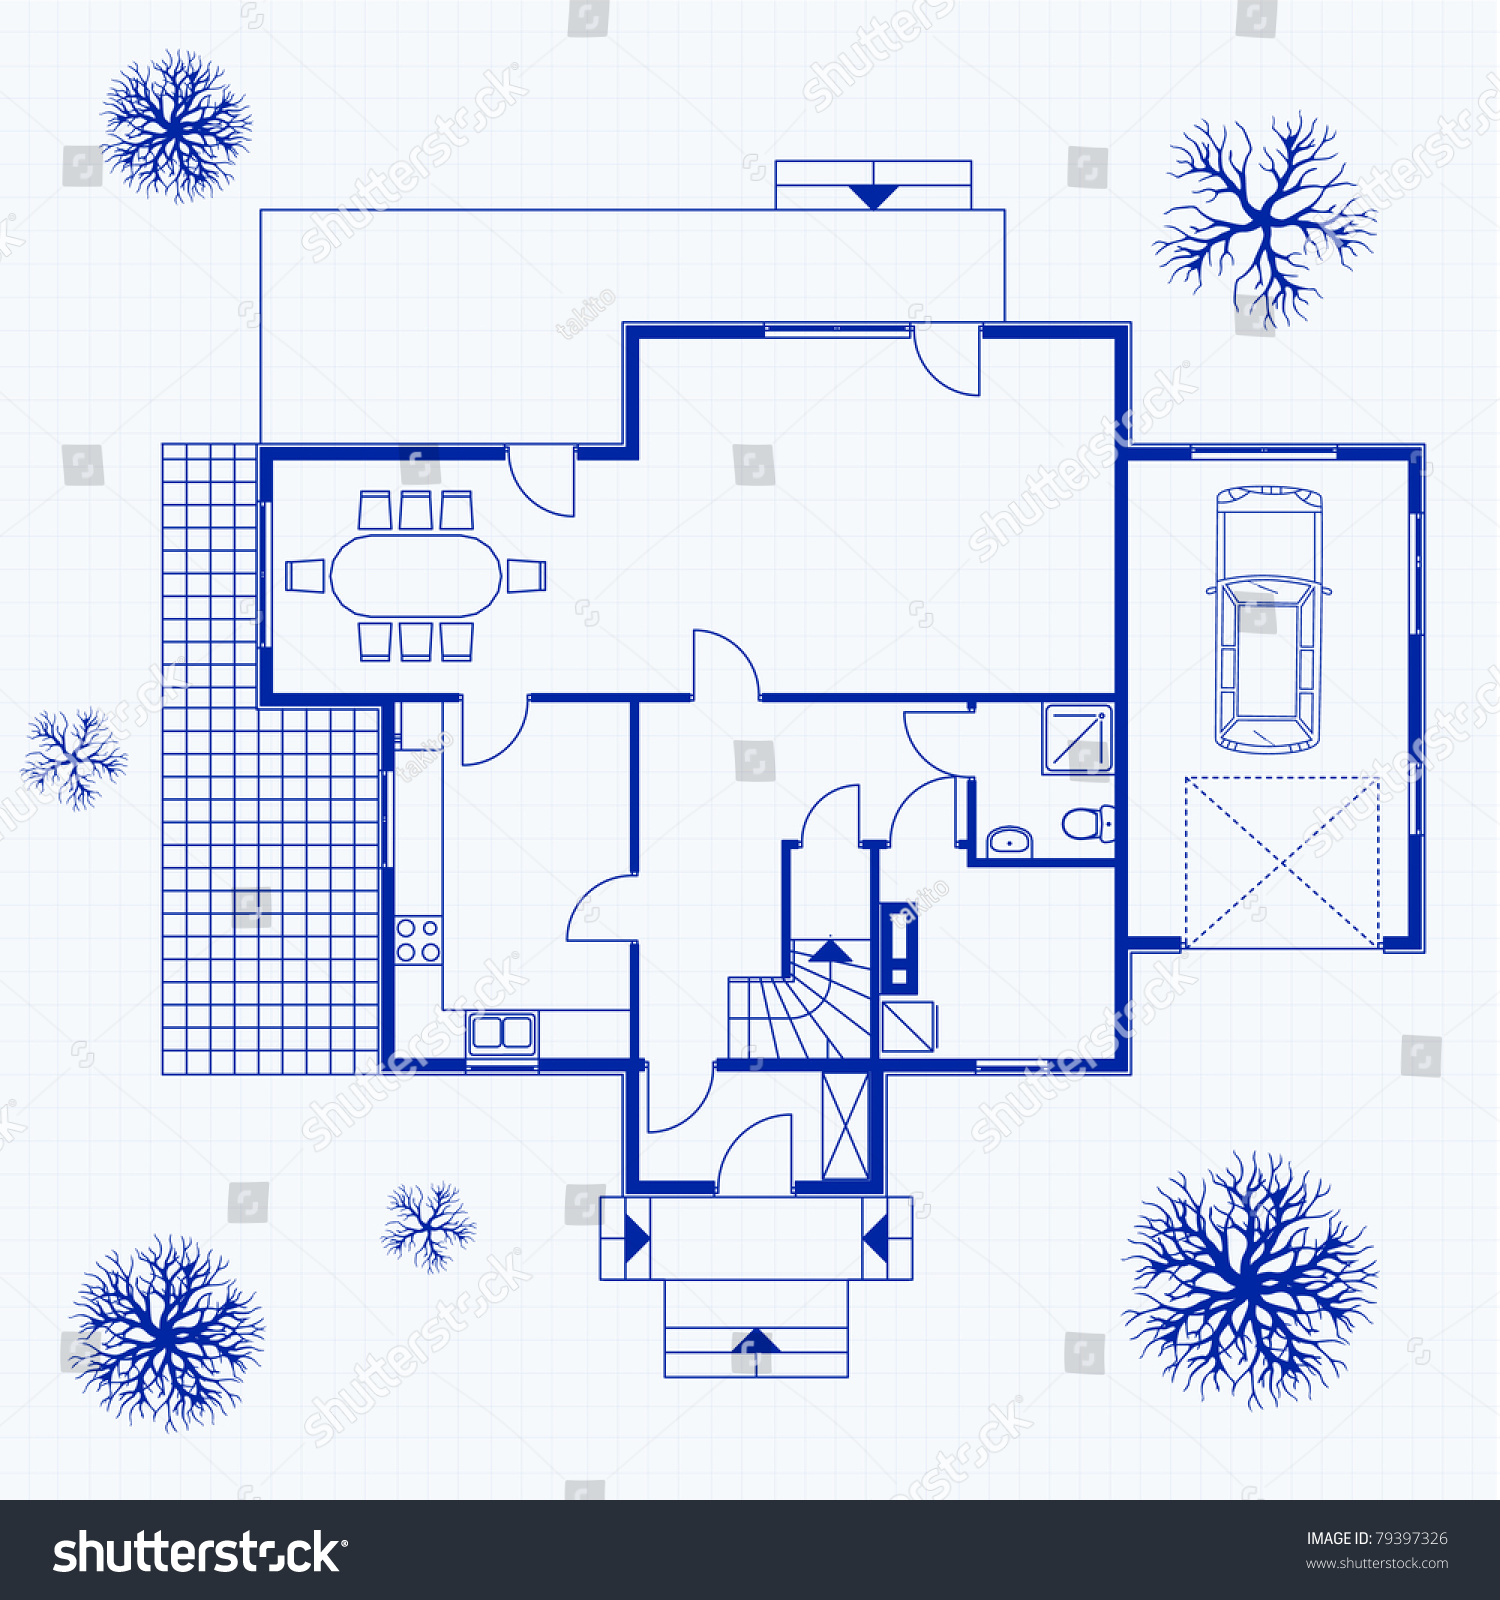 House blueprint with exterior and interior vector illustration